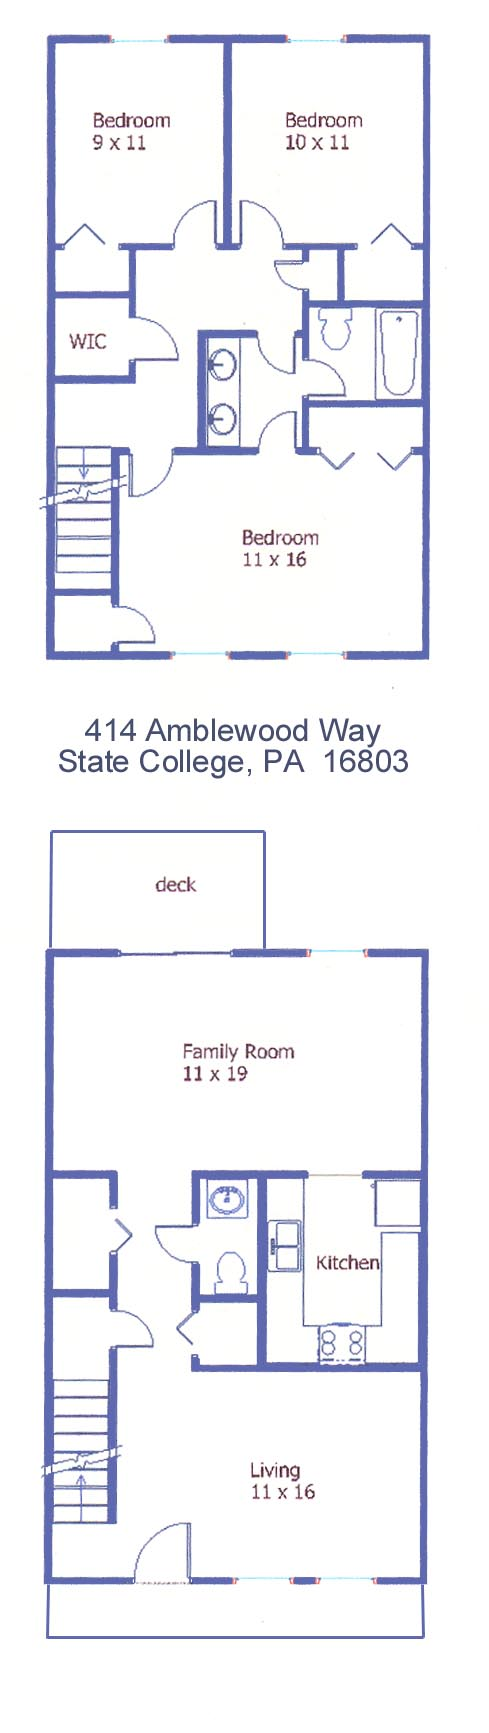 Floor plan of the 3 bedroom townhouse for rent at 414 Amblewood Way in State College, PA.